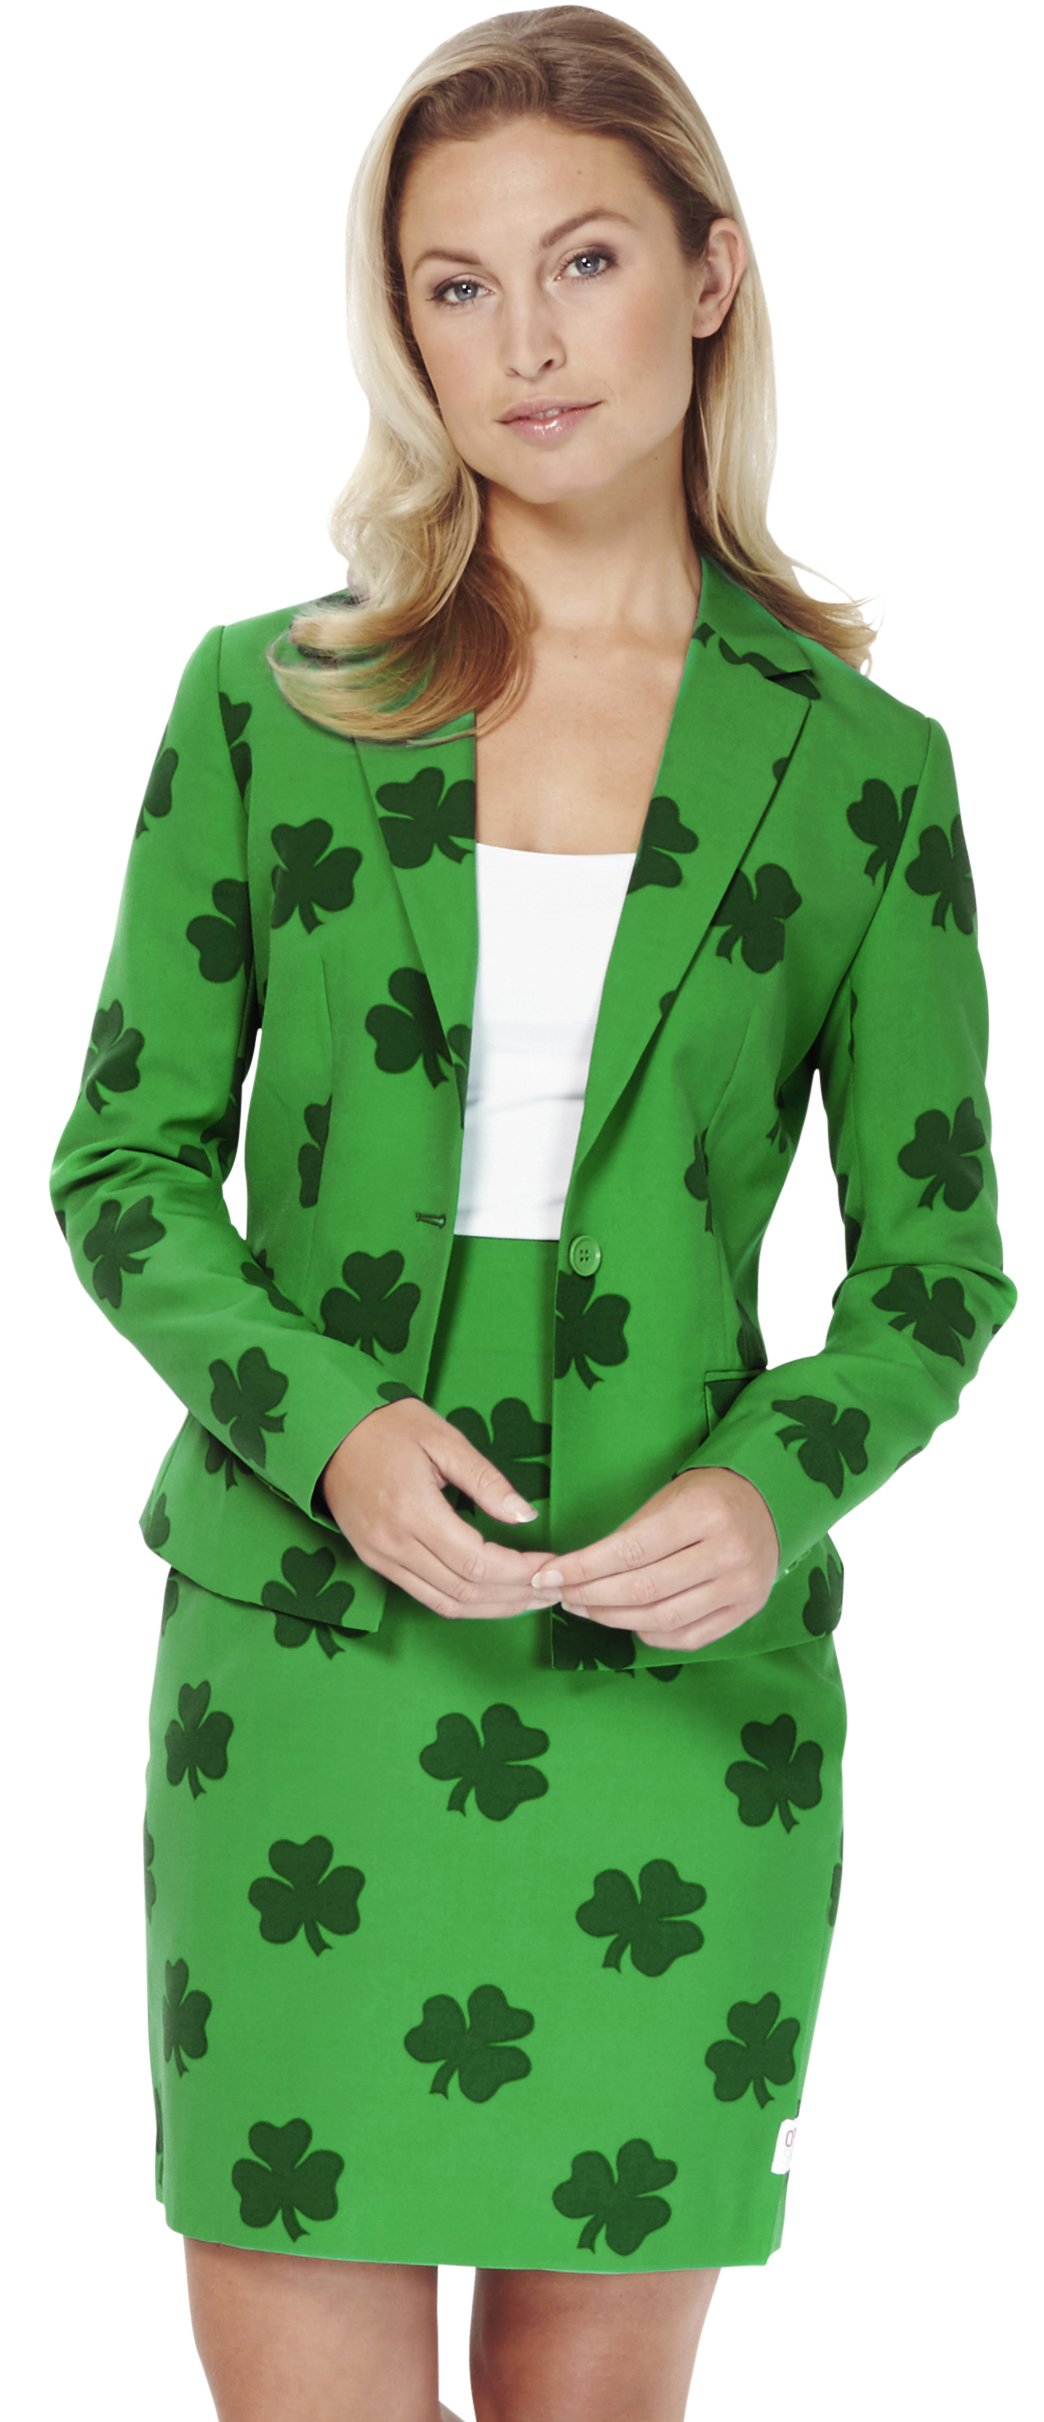 Opposuits Womens 'St. Patrick's Girl' Party Suit by, 12